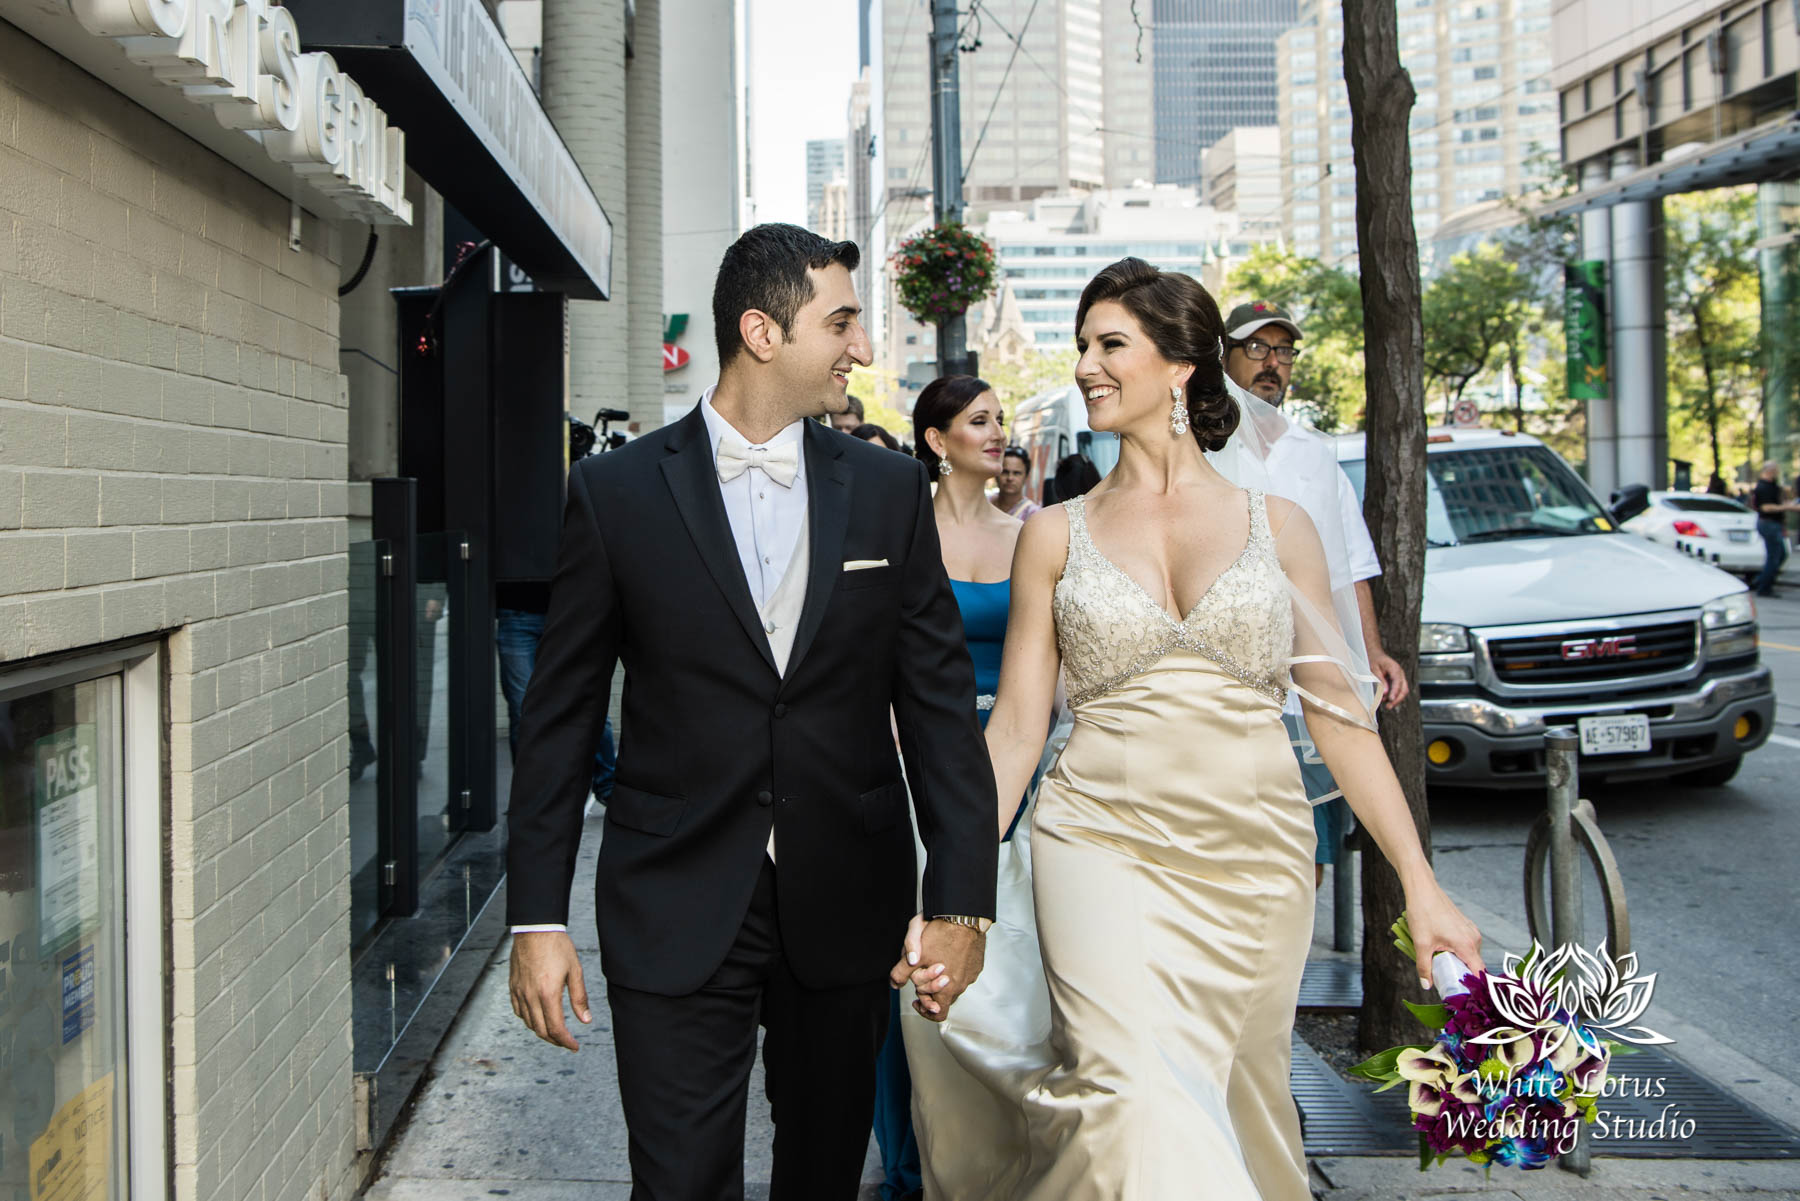 087 - Wedding - Toronto - Downtown wedding photo-walk - PW